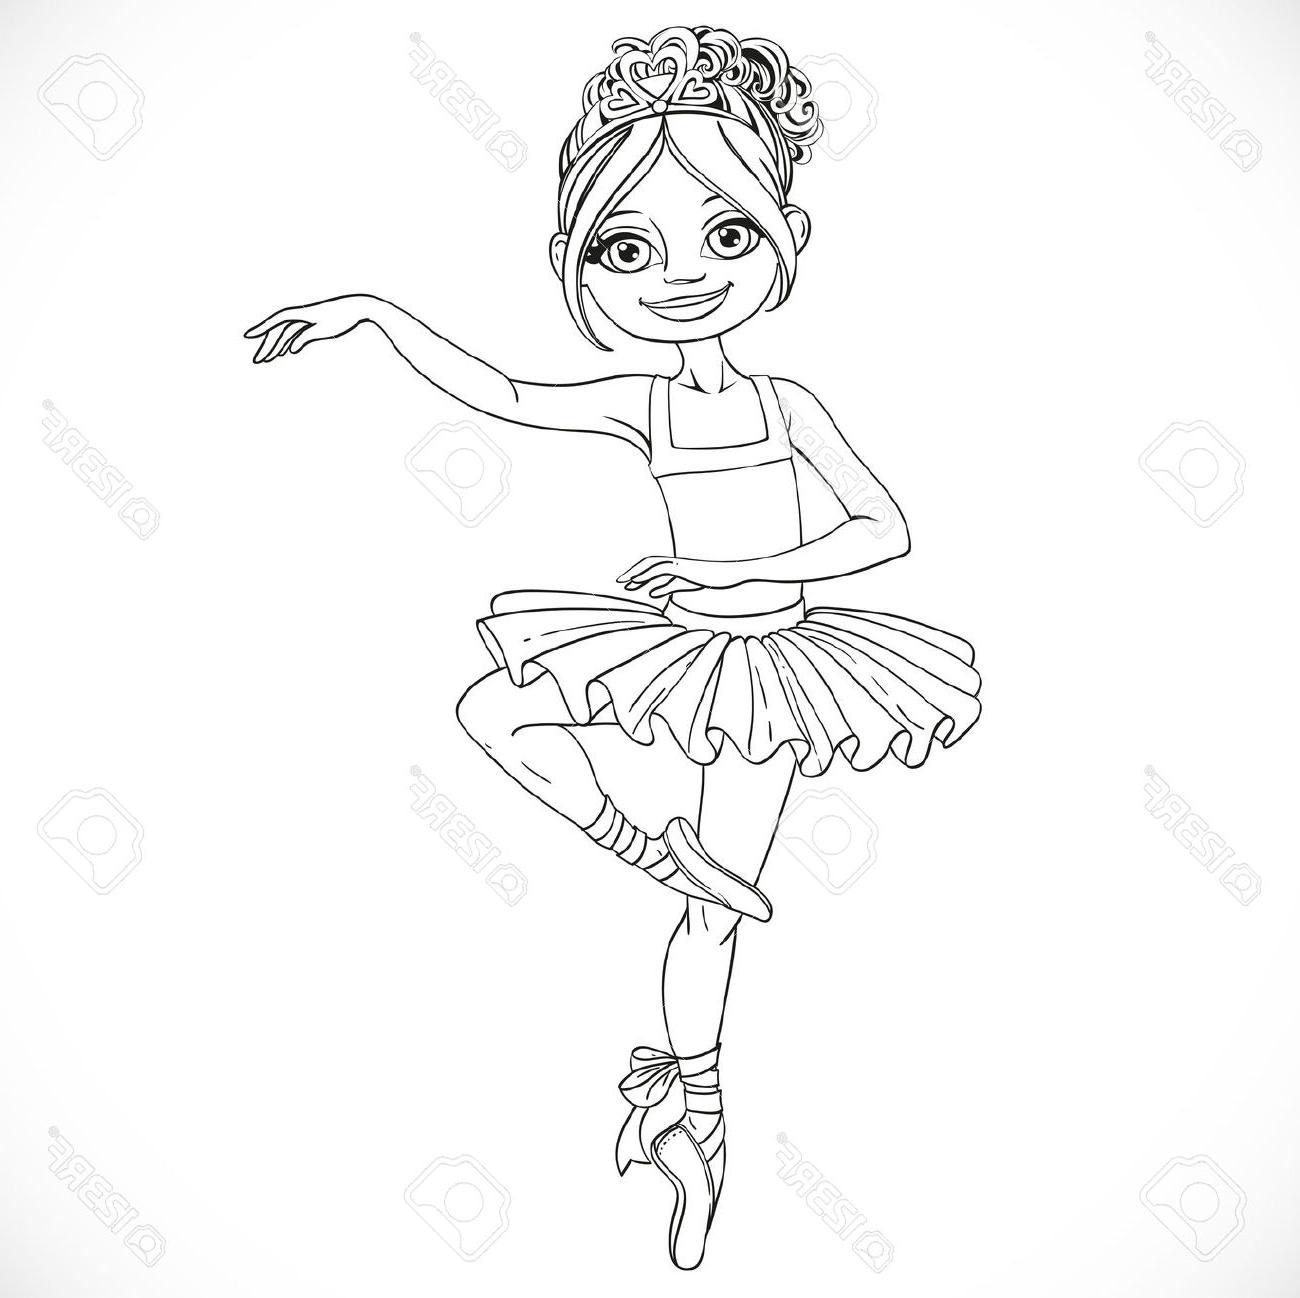 Ballerina clipart black and white, Picture #251227 ballerina.